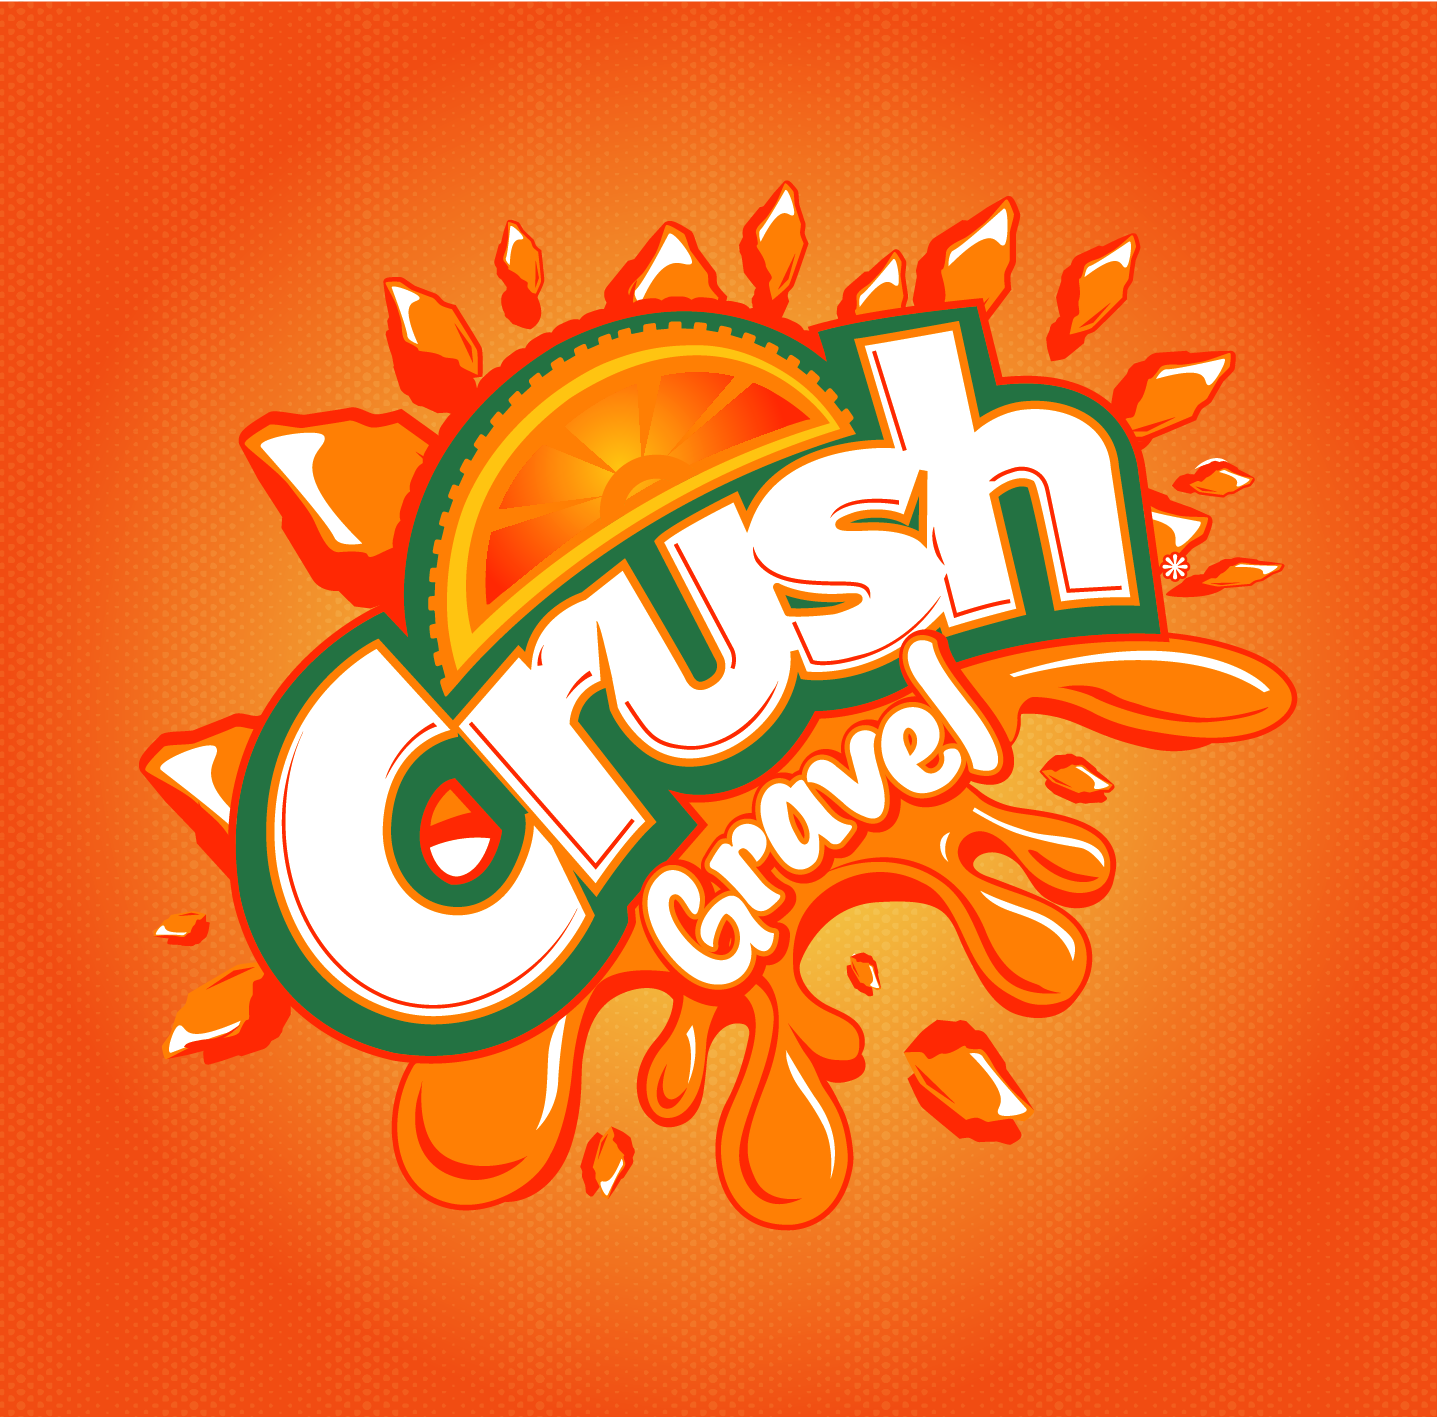 crush-gravel-02